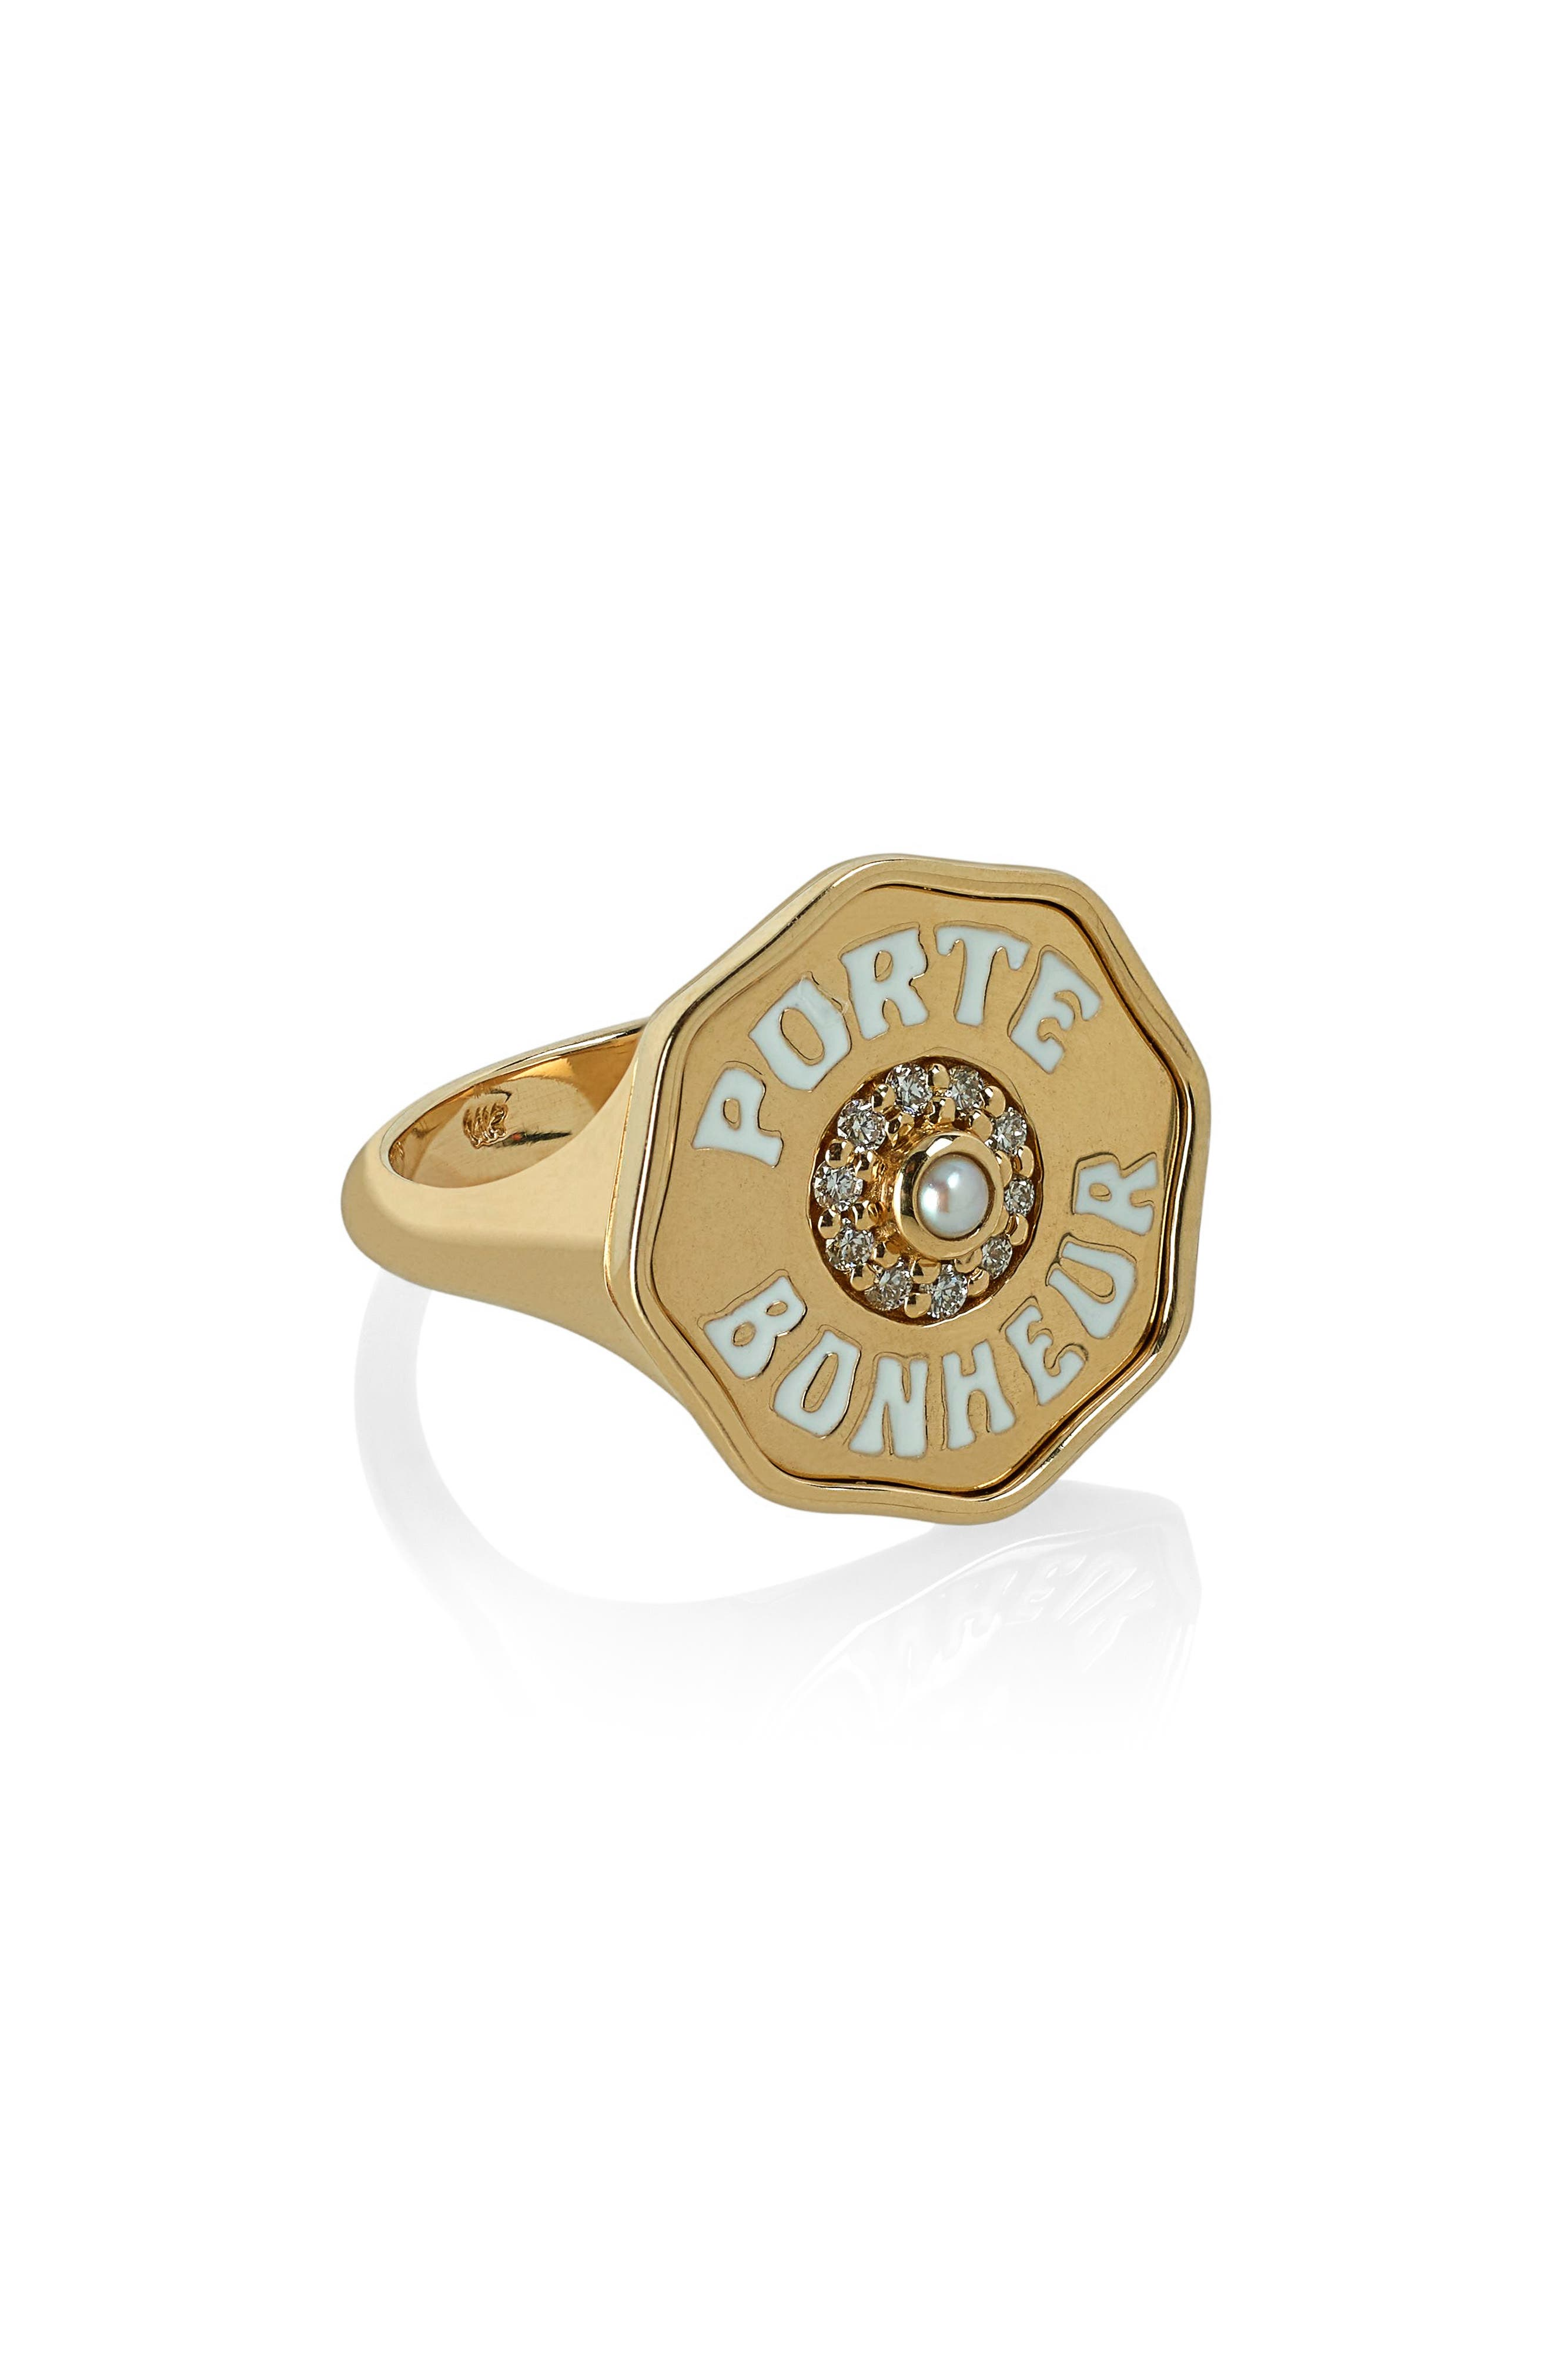 Porte Bonhuer Coin Ring,                         Main,                         color, Yellow Gold